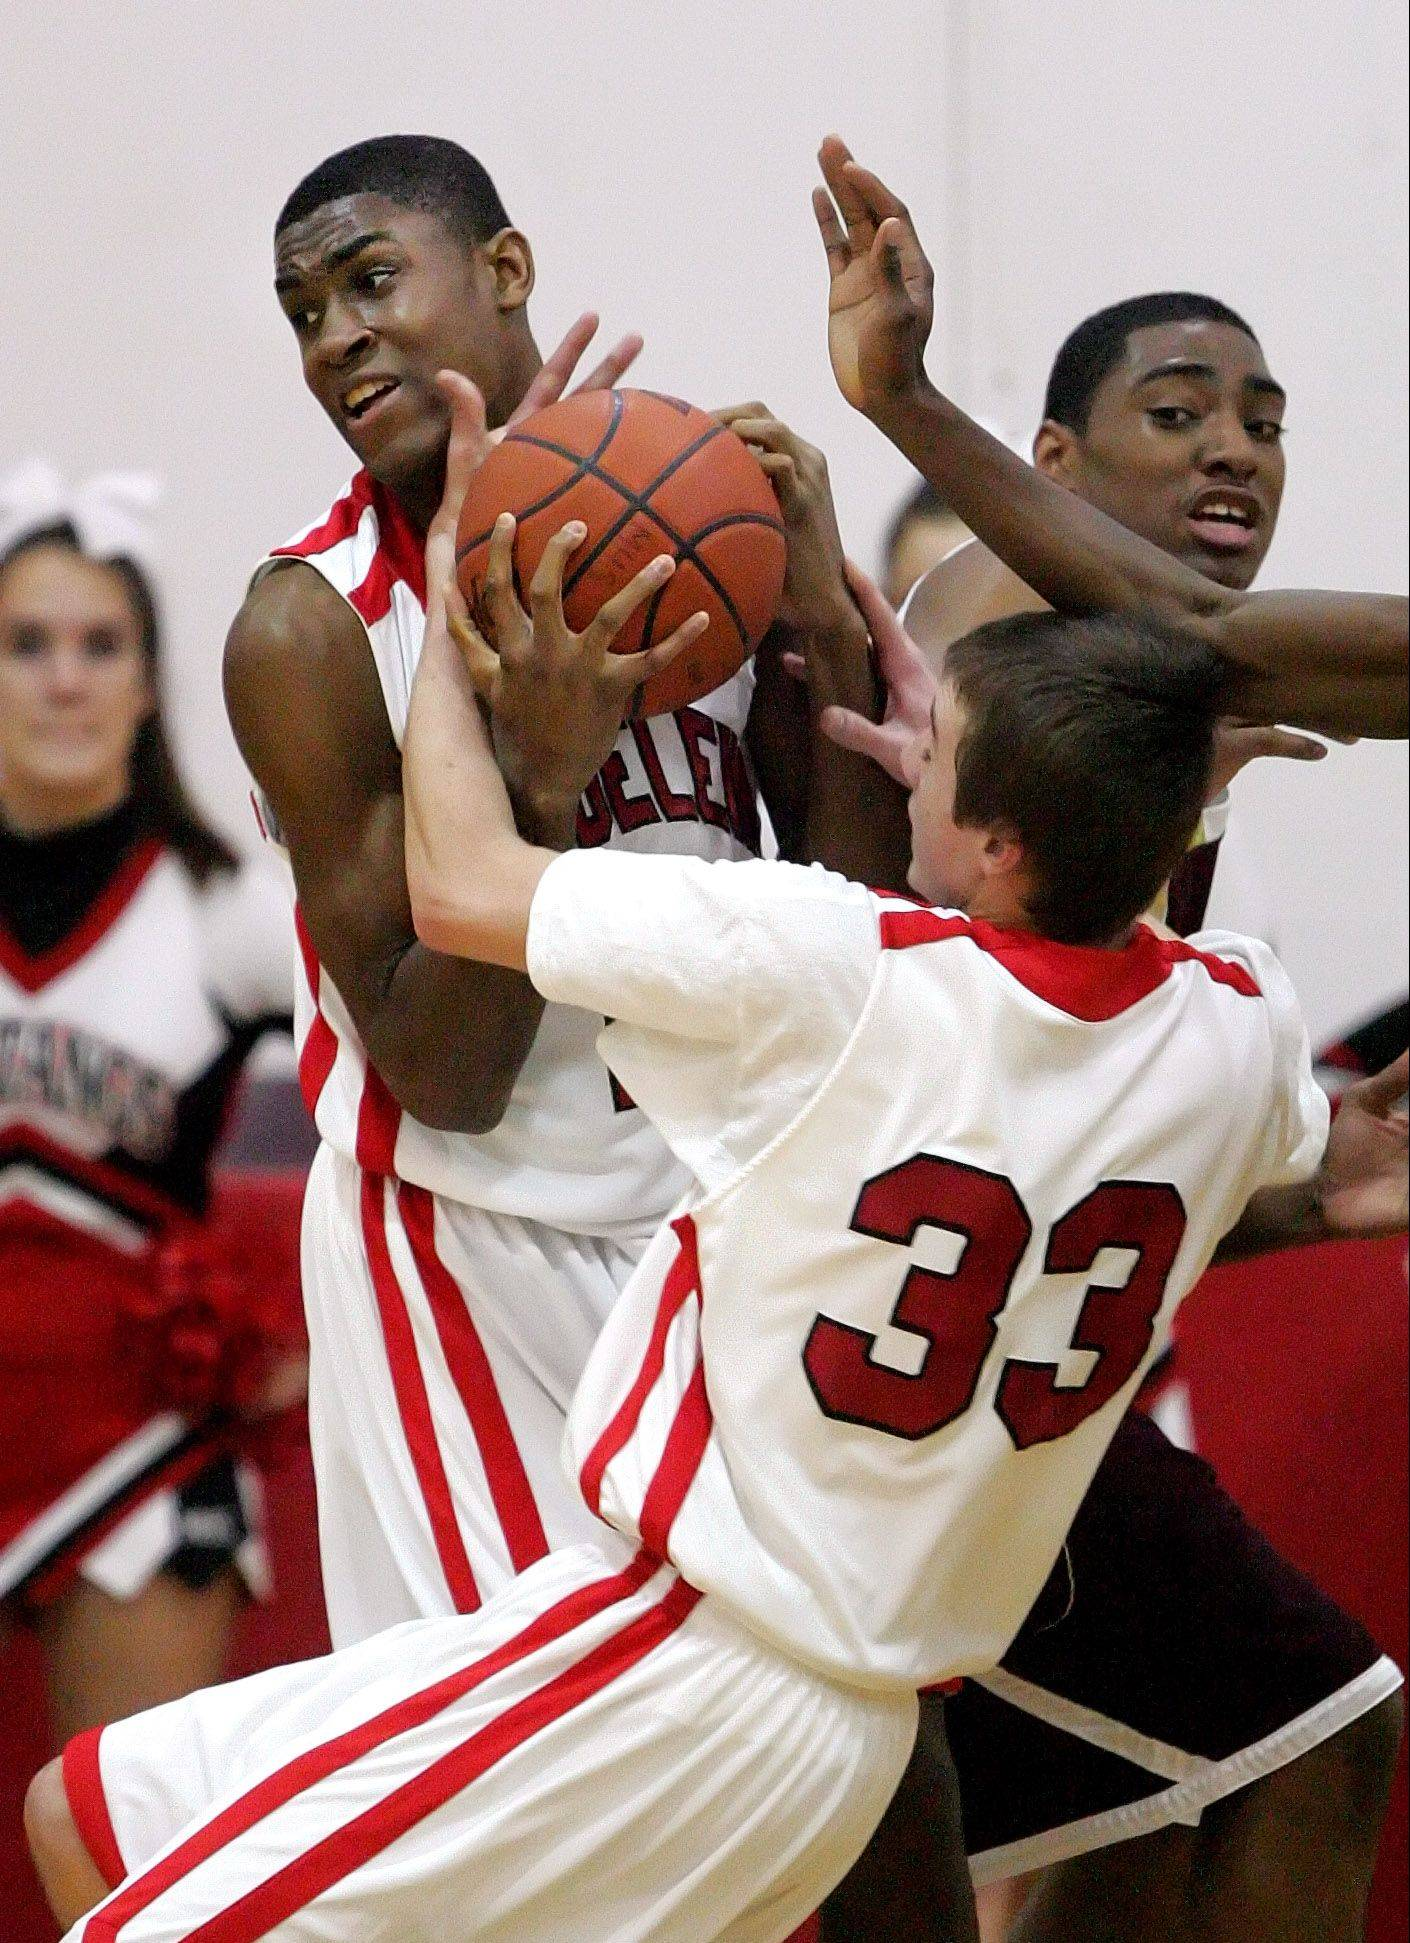 Mundelein's Chino Ebube, left, and Sean O'Brien battle for a rebound with Uplift's Corey Gonore during tournament play Monday at Mundelein.